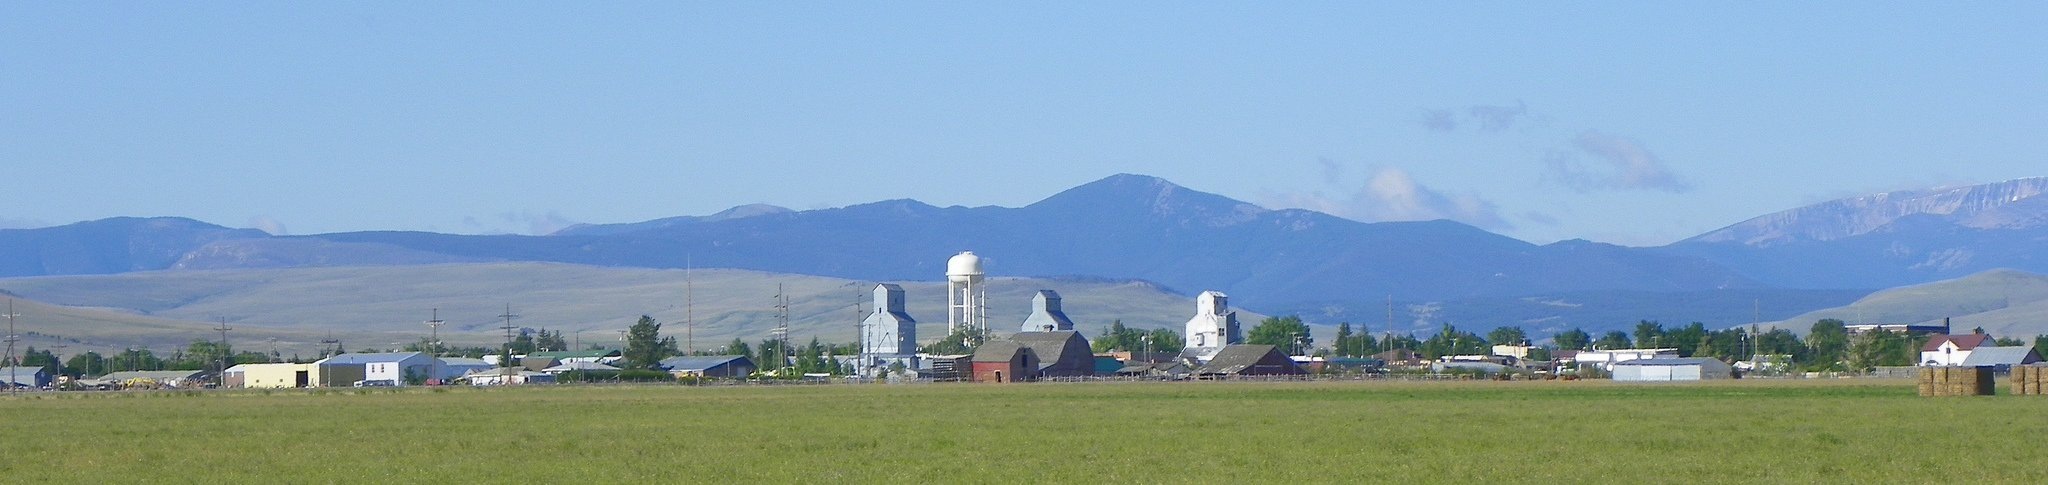 central montana russell country